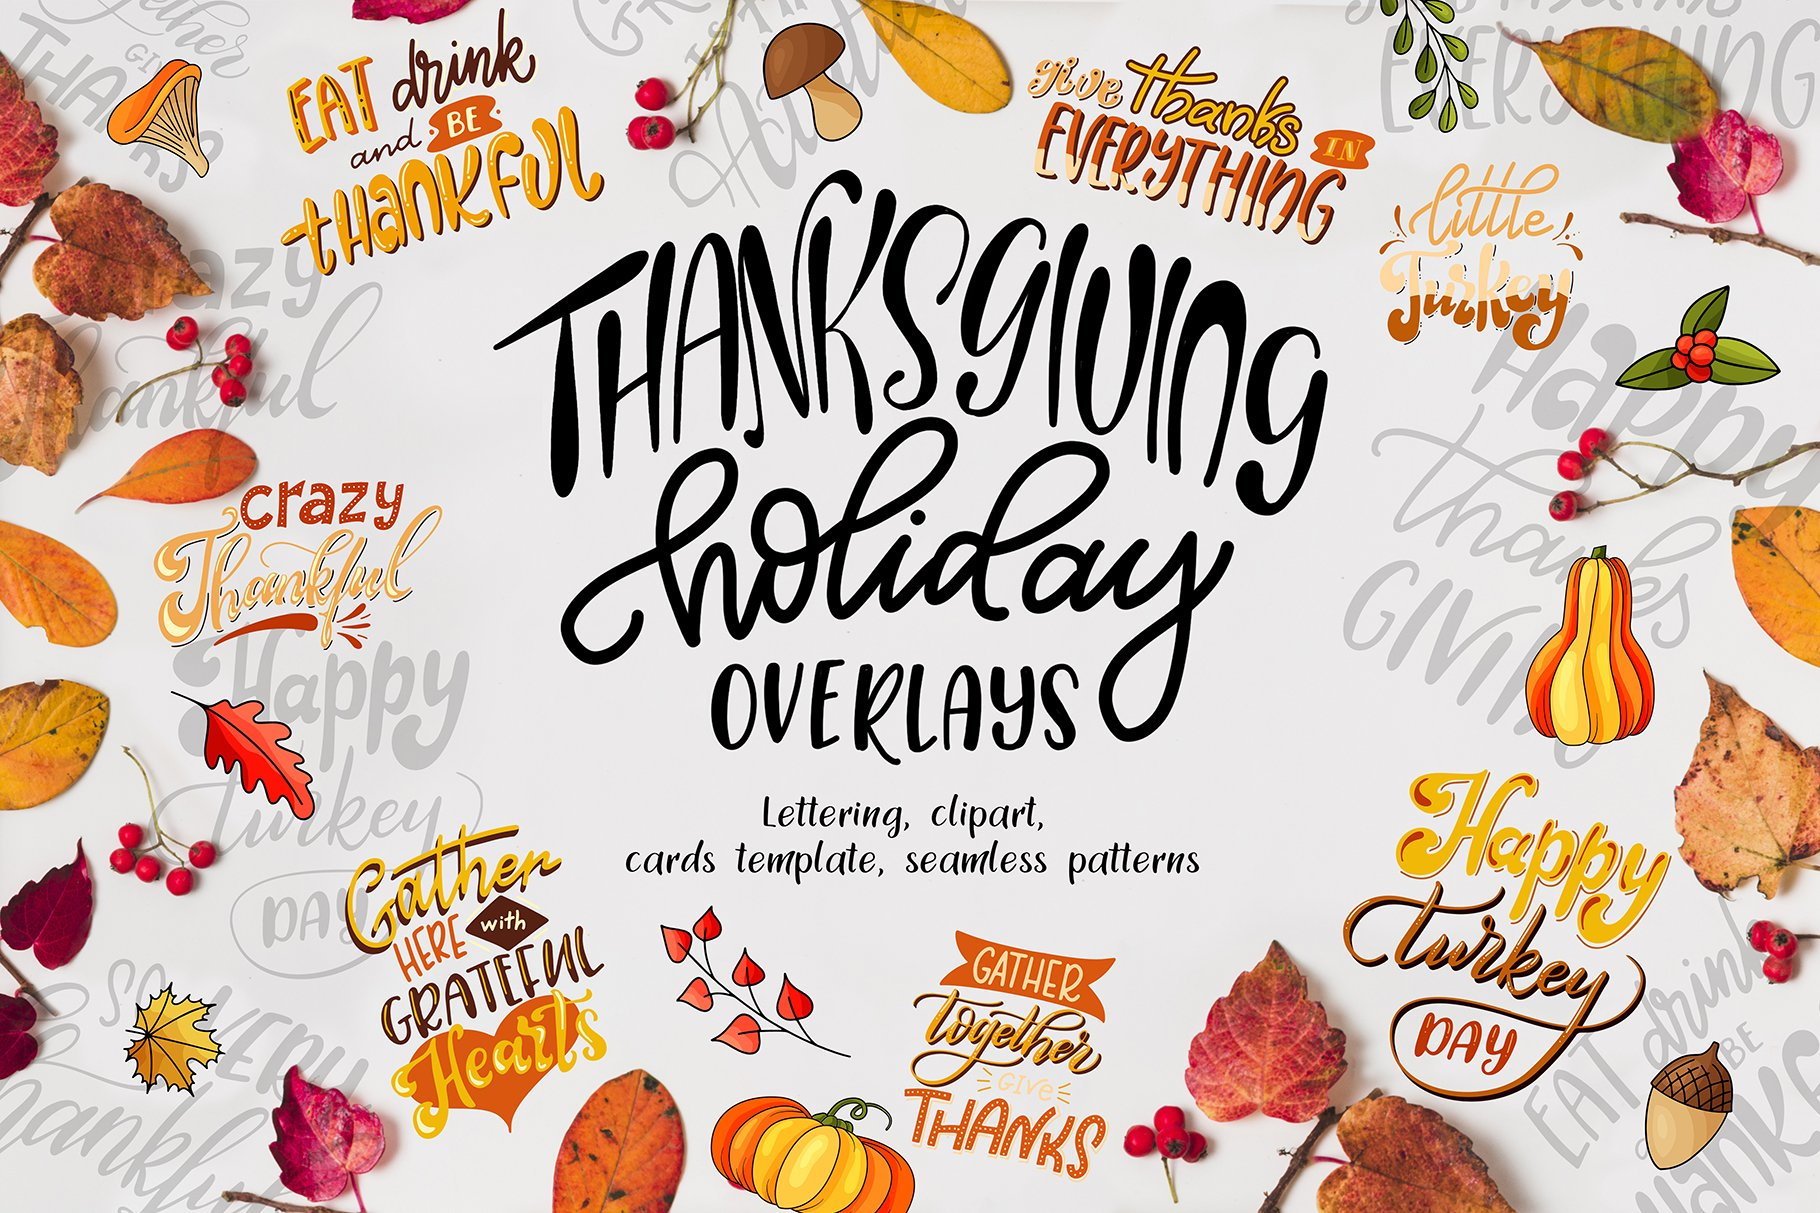 Thanksgiving holiday overlay+clipart.